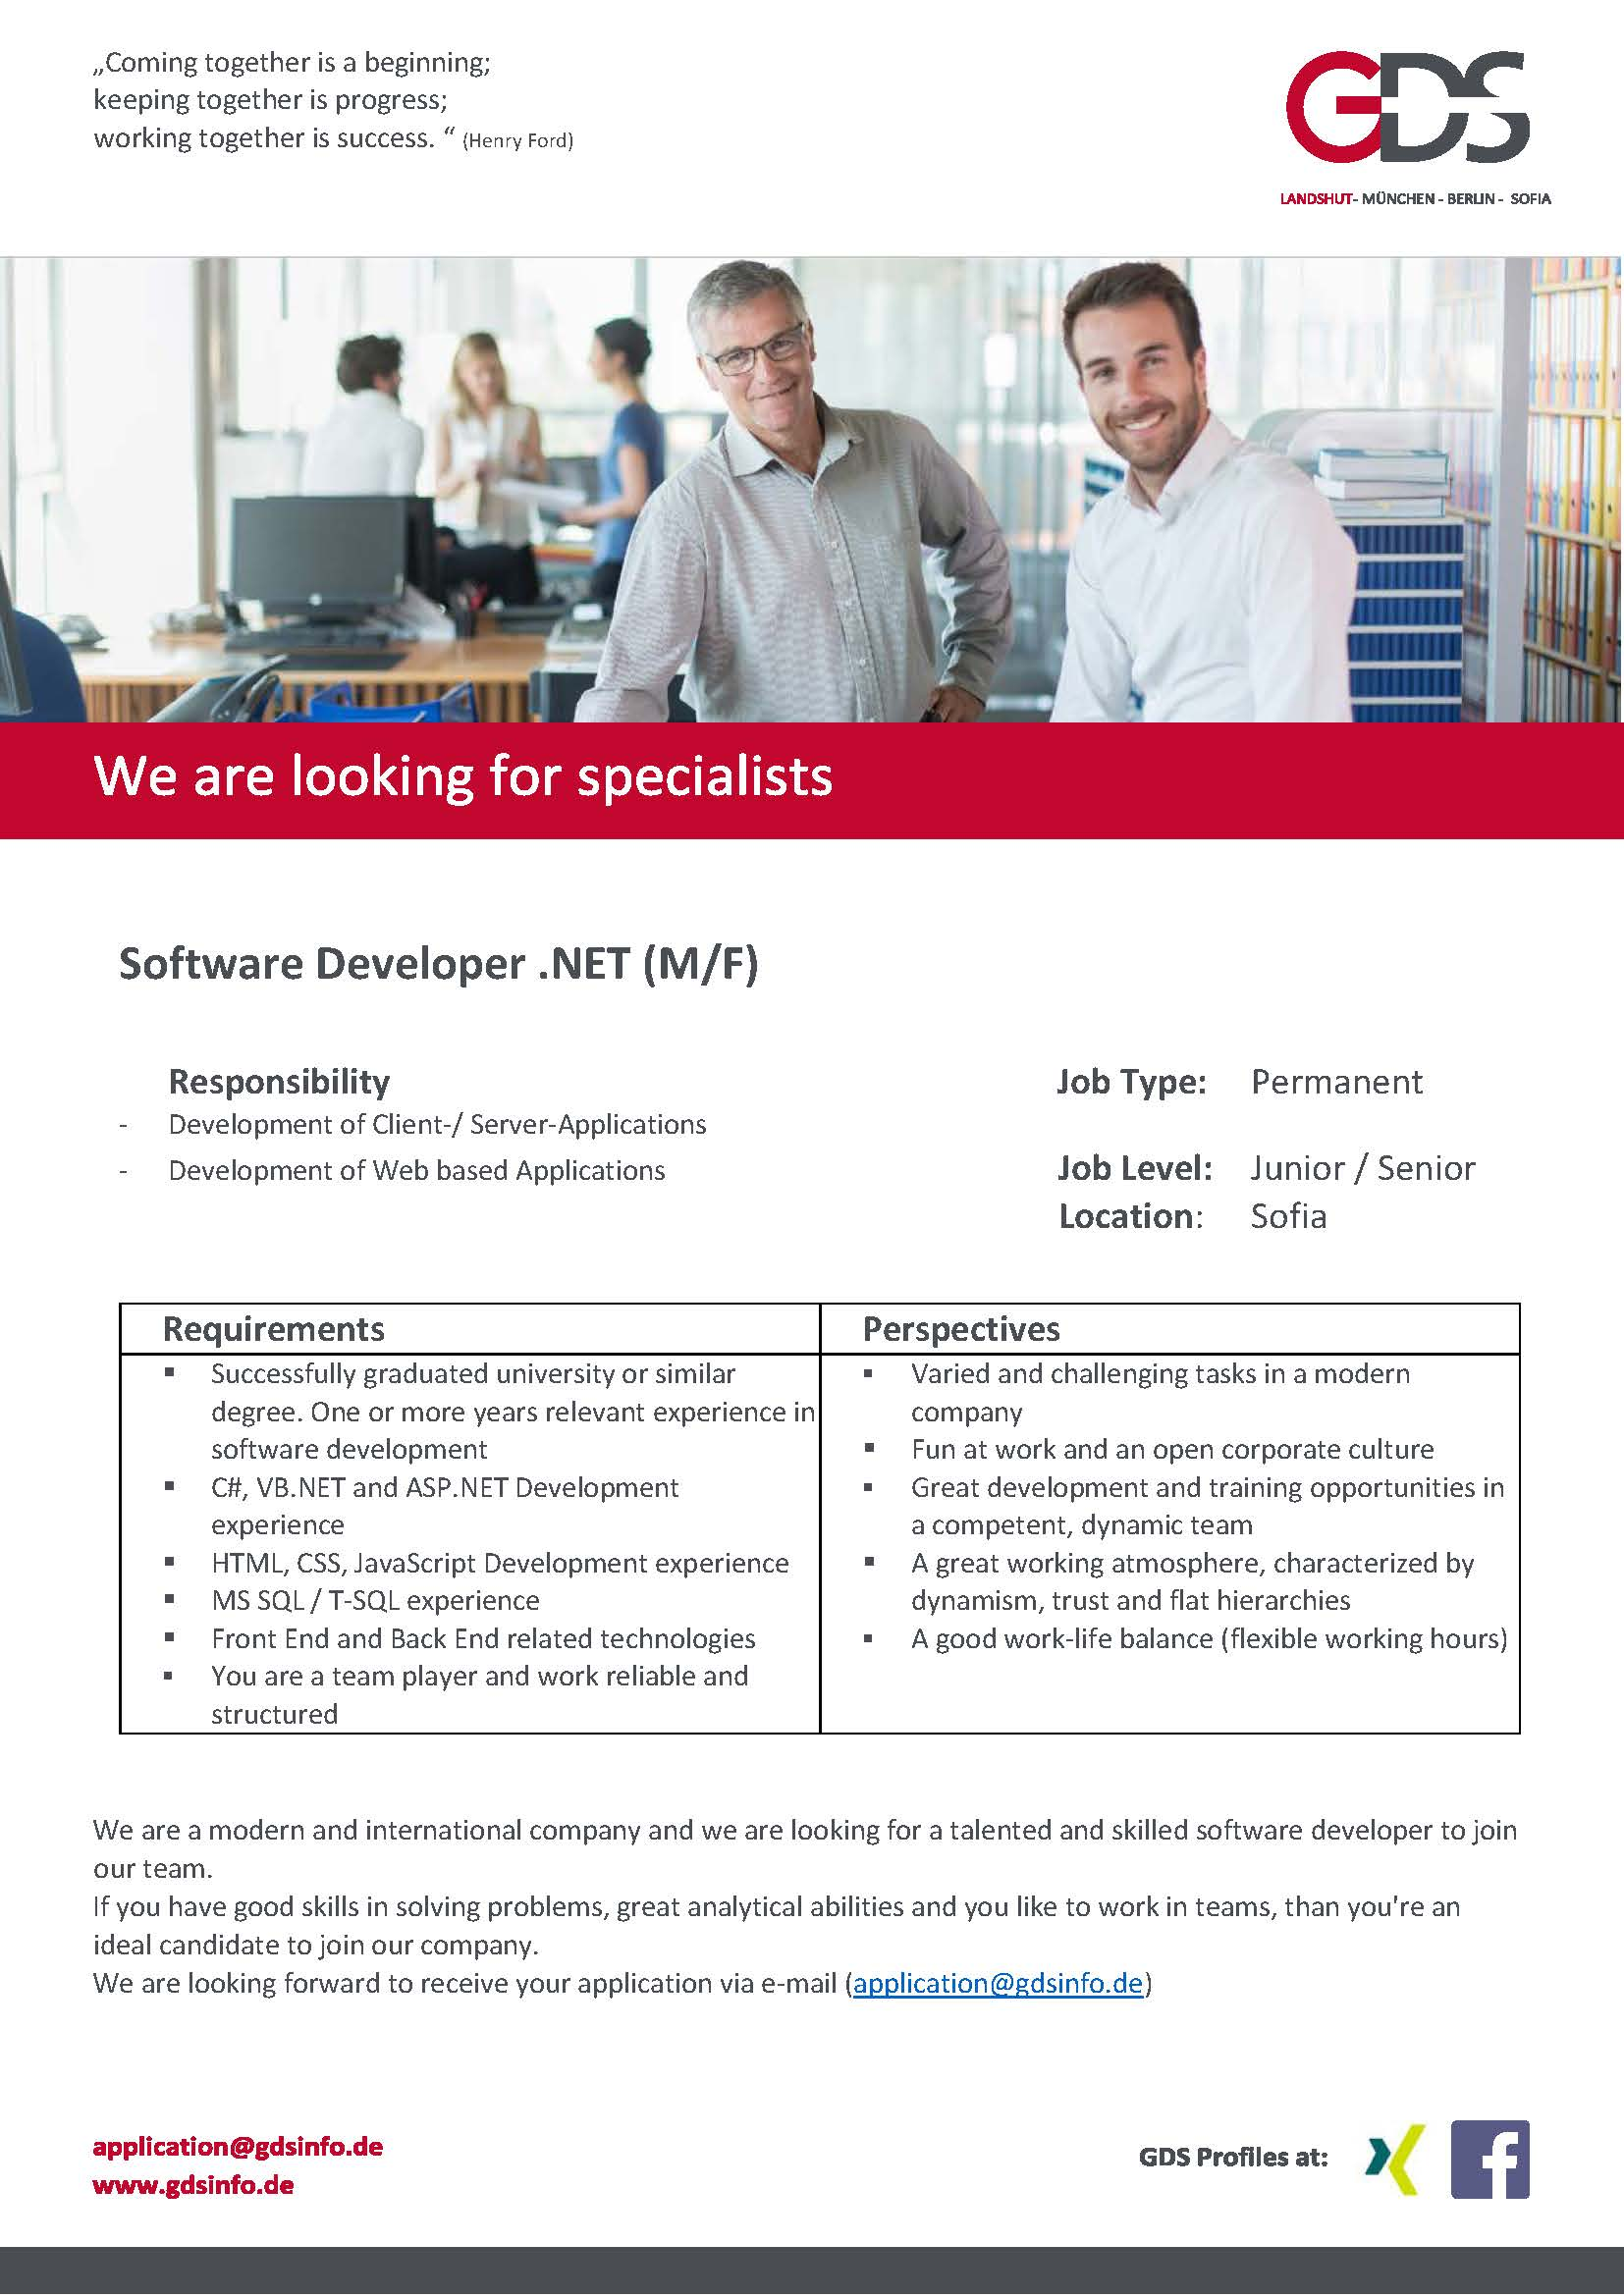 Software Developer .NET (m/f) Location Sofia